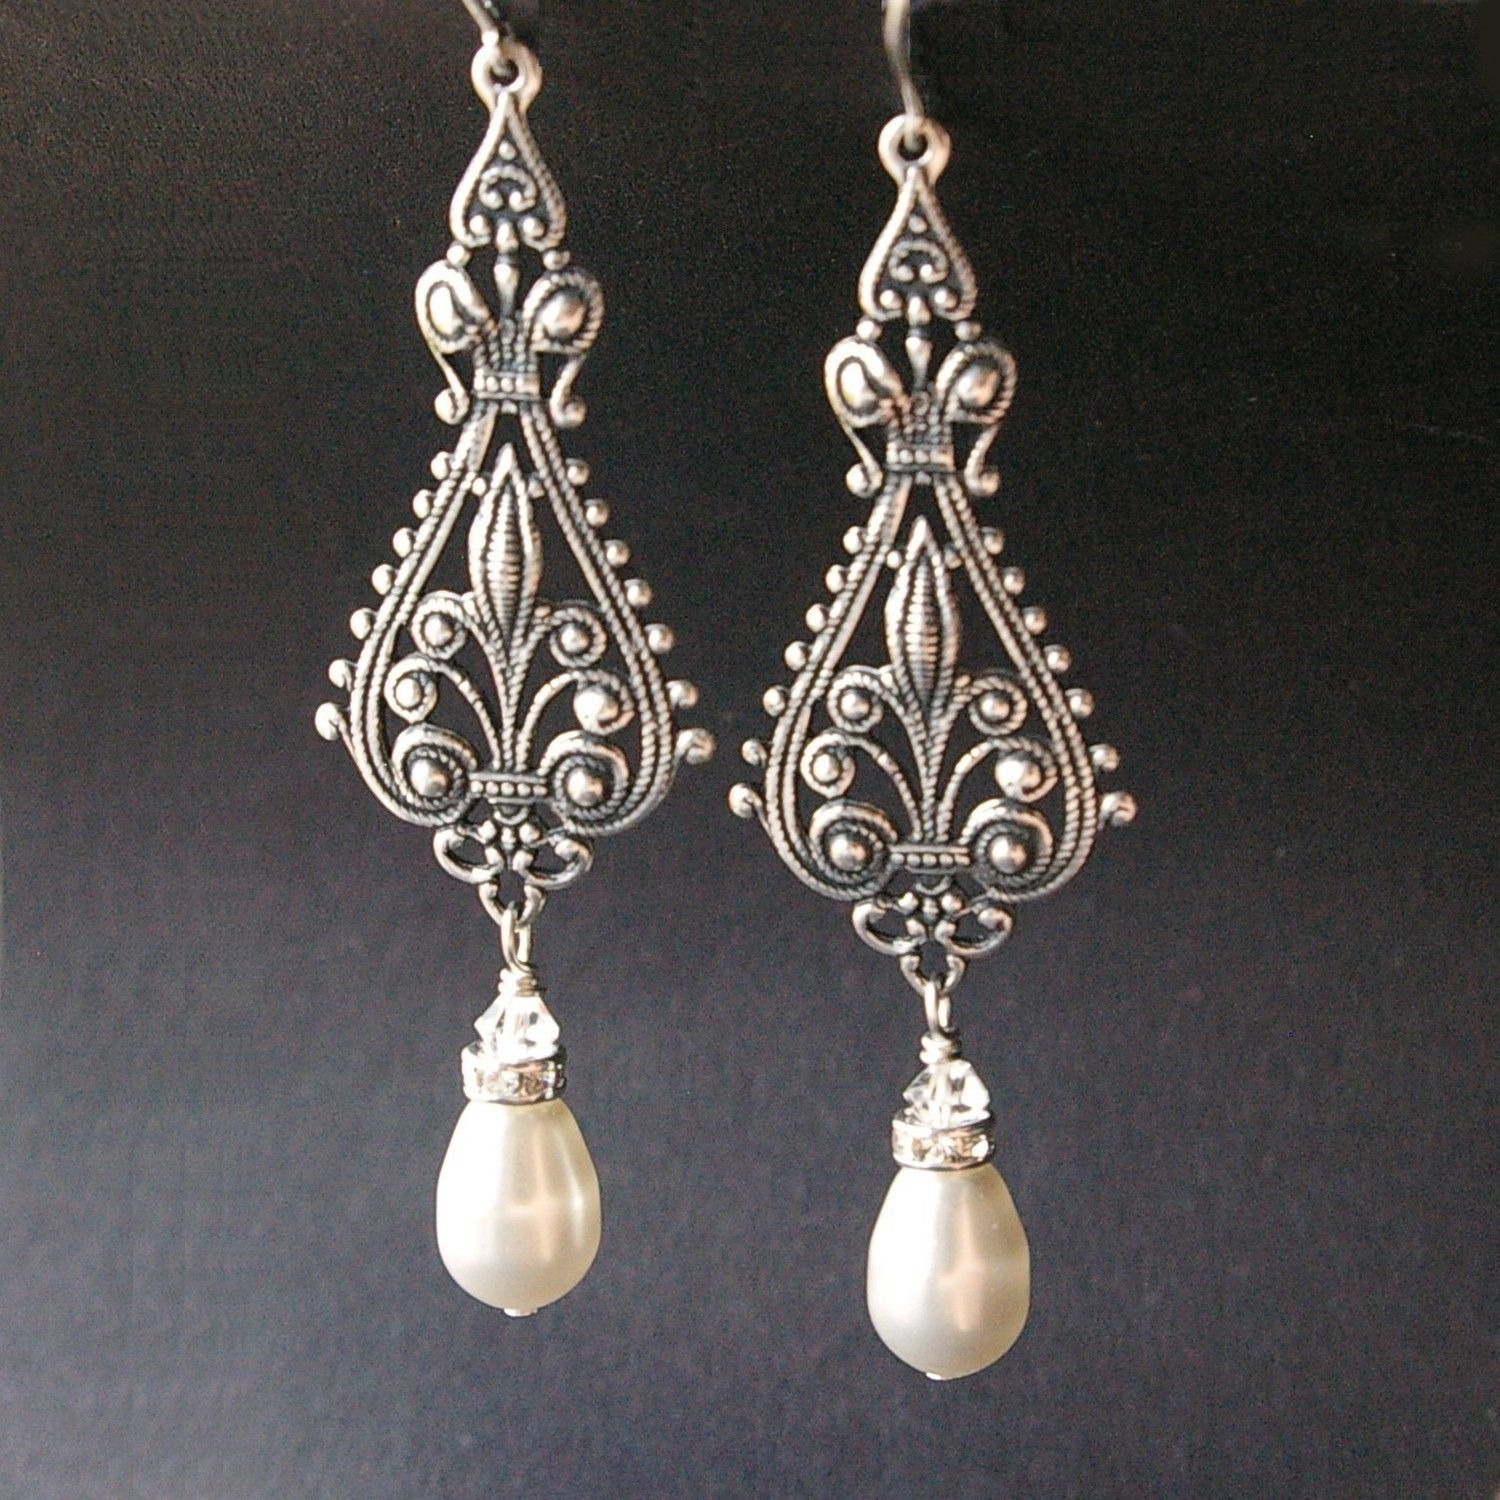 Vintage Bridal Earrings Silver Filigree Antiqued Chandelier Ivory White Pearl Vivienne 39 00 Via Etsy